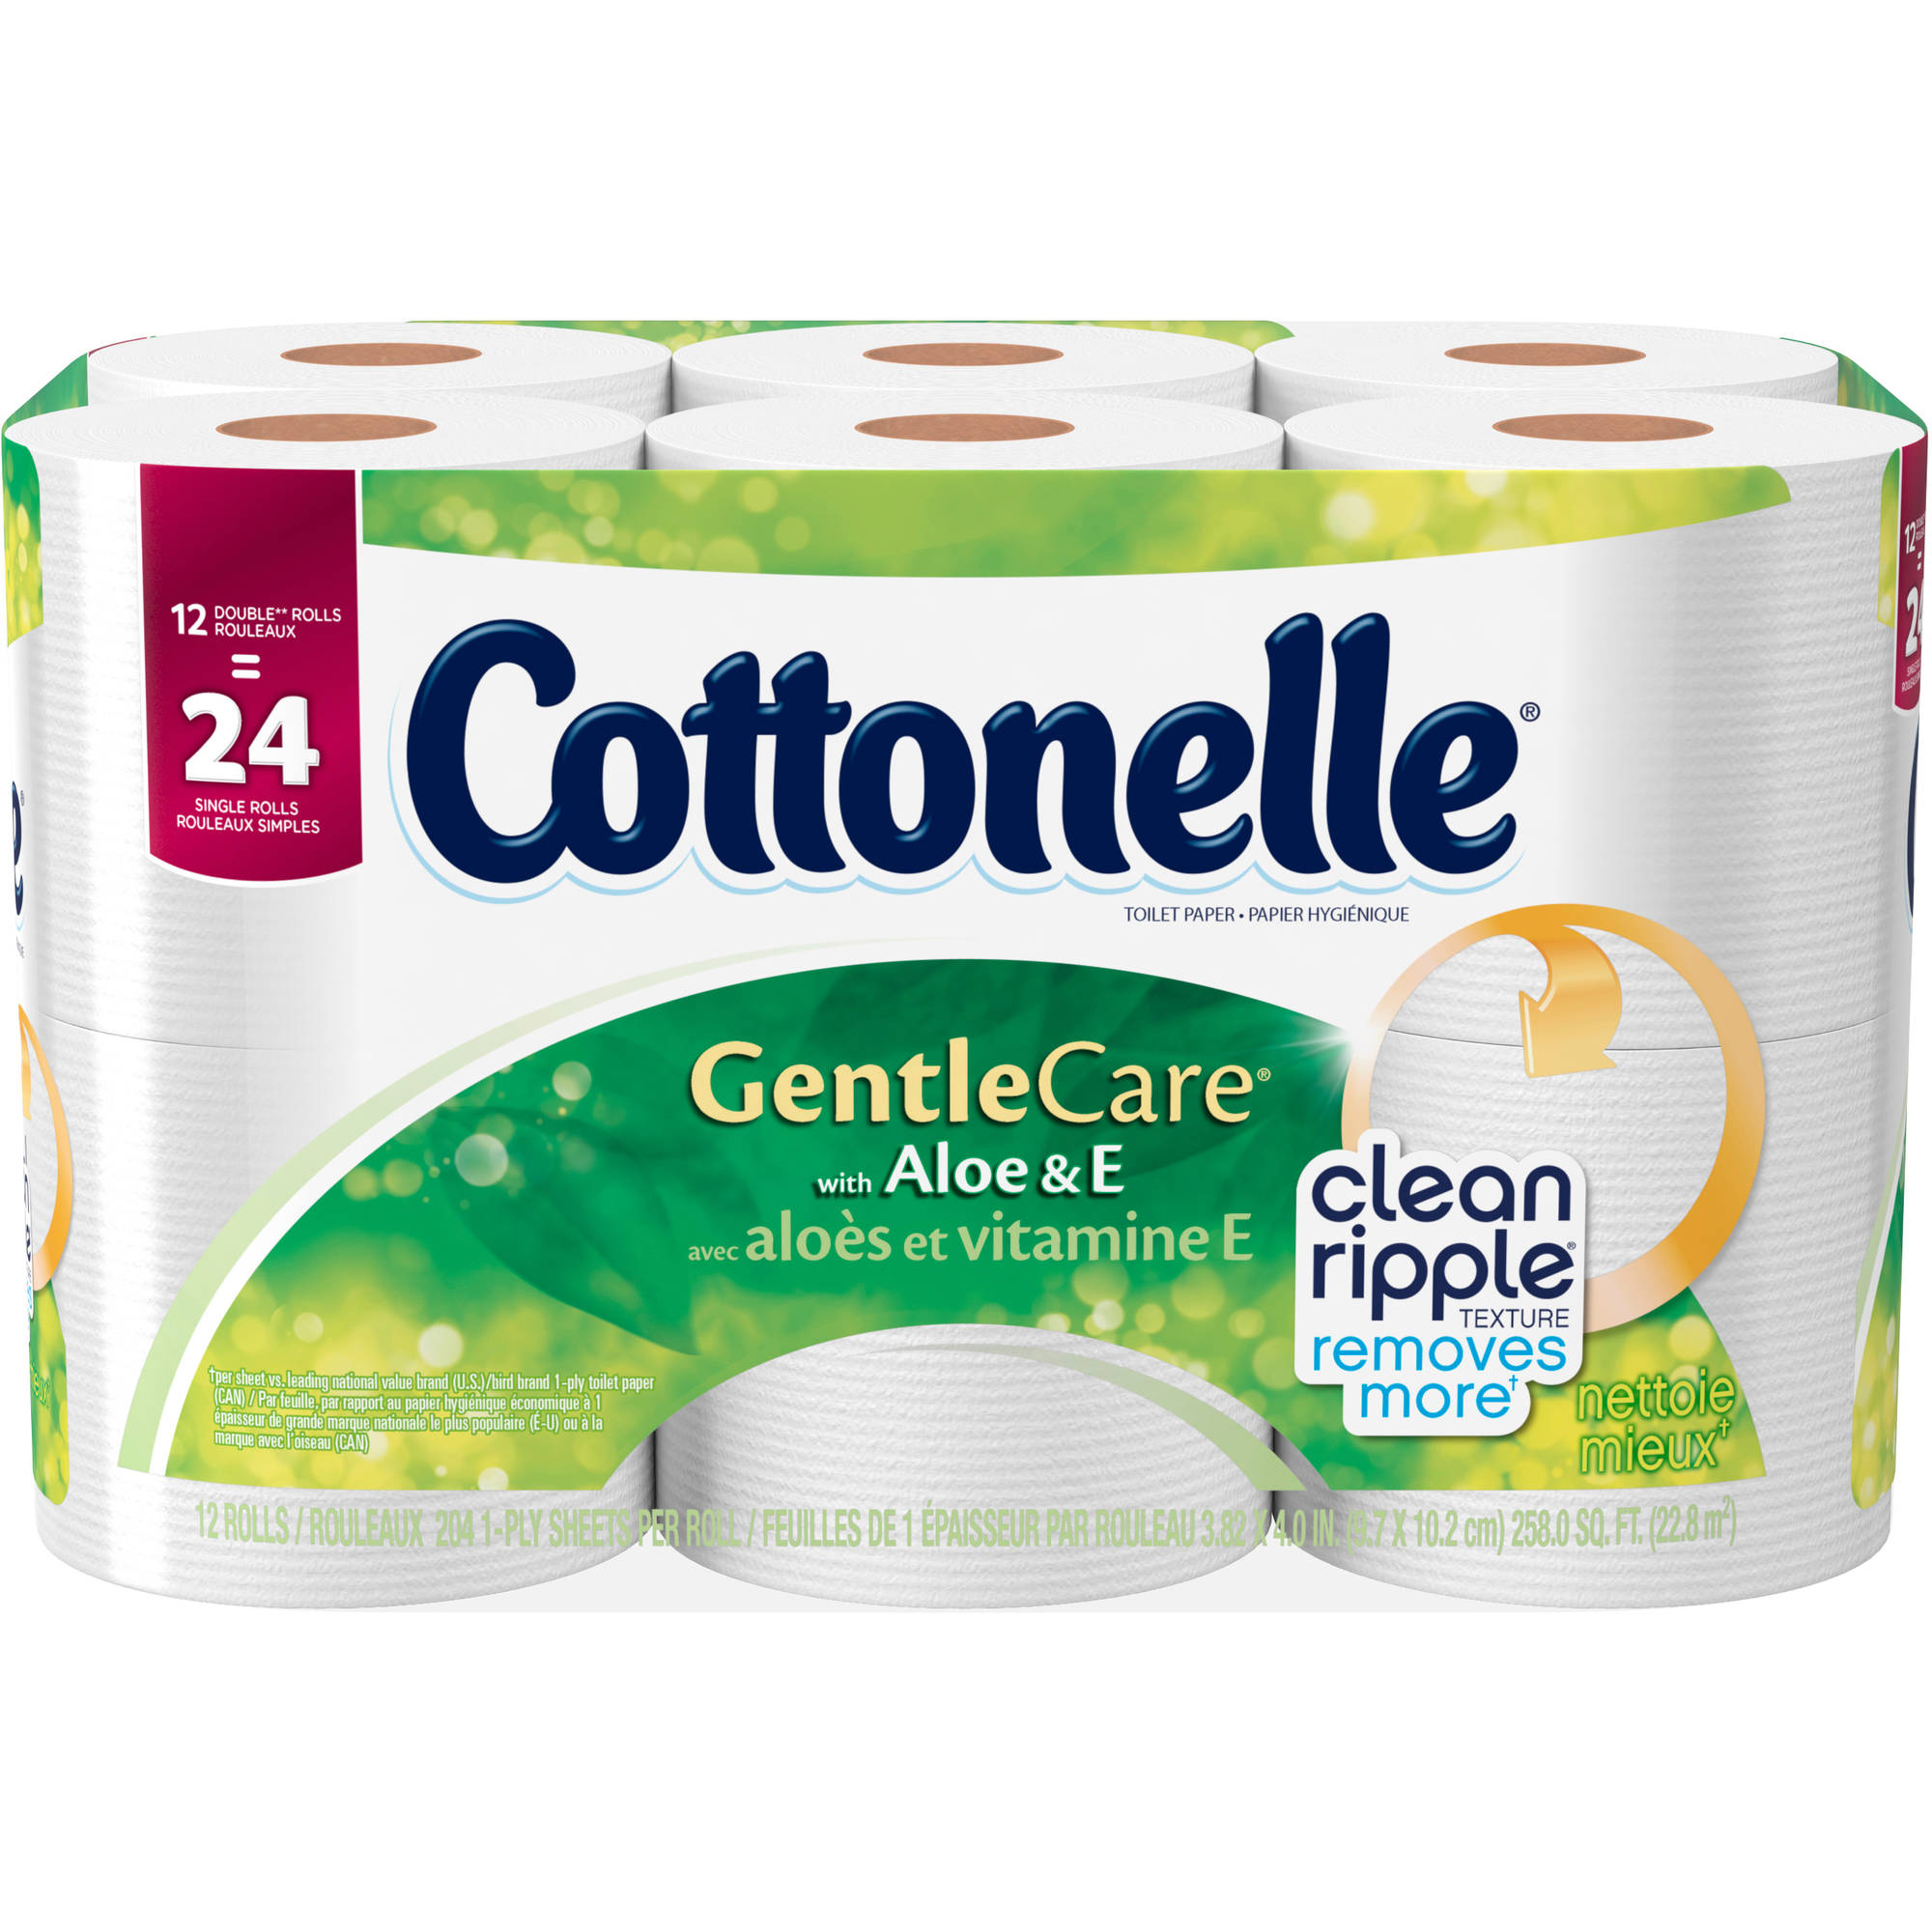 Cottonelle Gentle Care Double Roll Toilet Paper, 204 sheets, 12 rolls